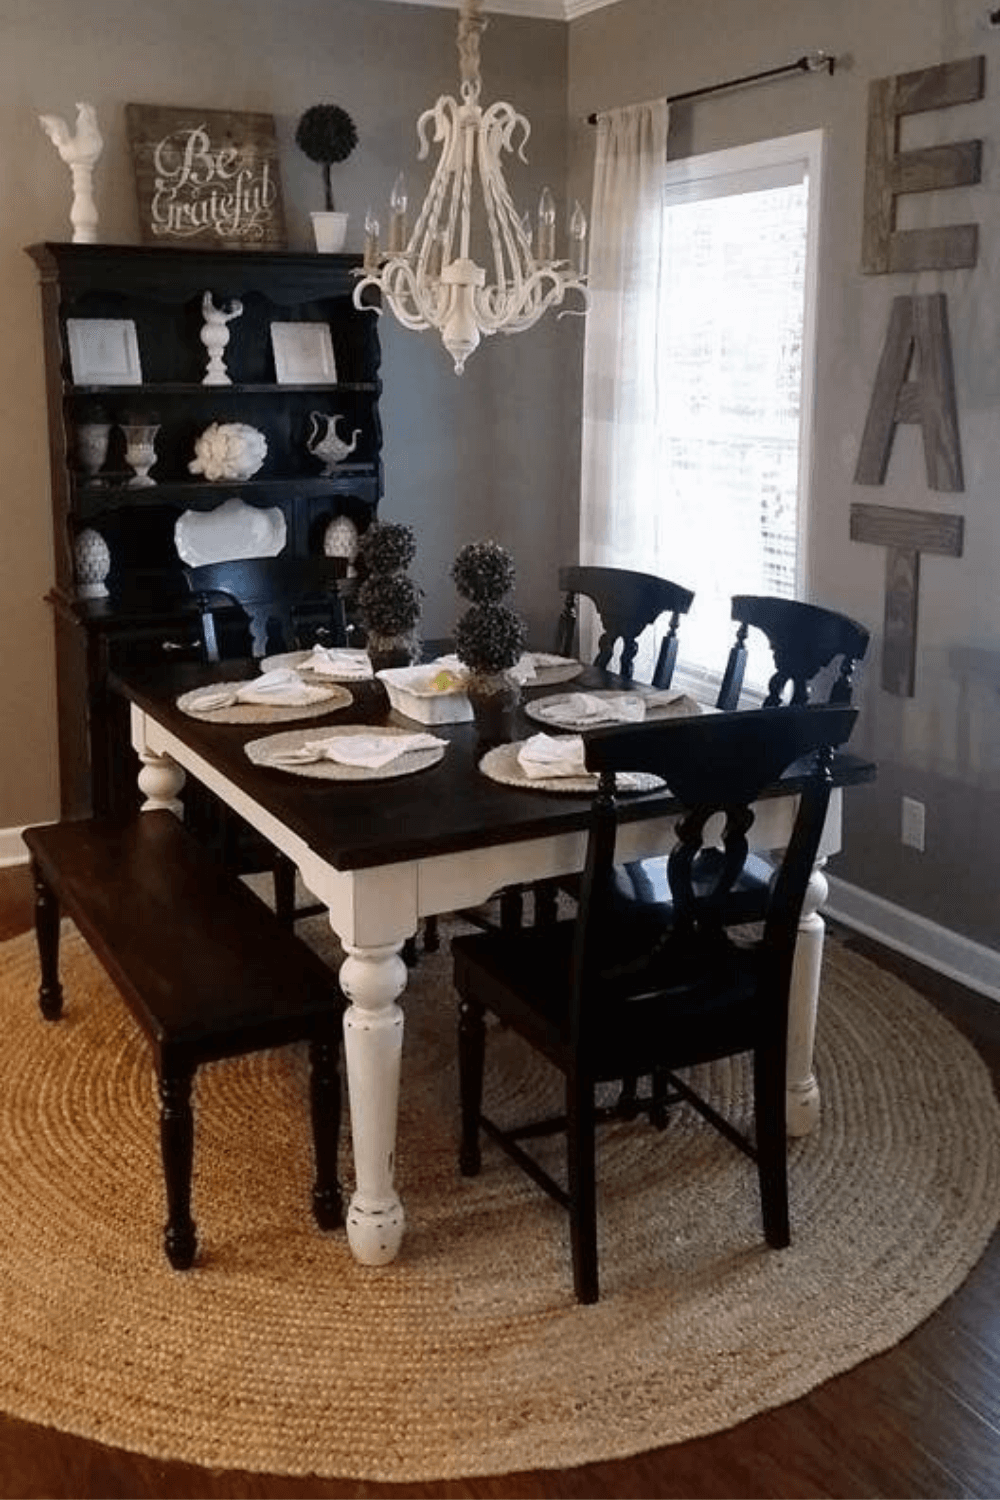 FARMHOUSE DINING ROOM DECOR BLACK TABLE